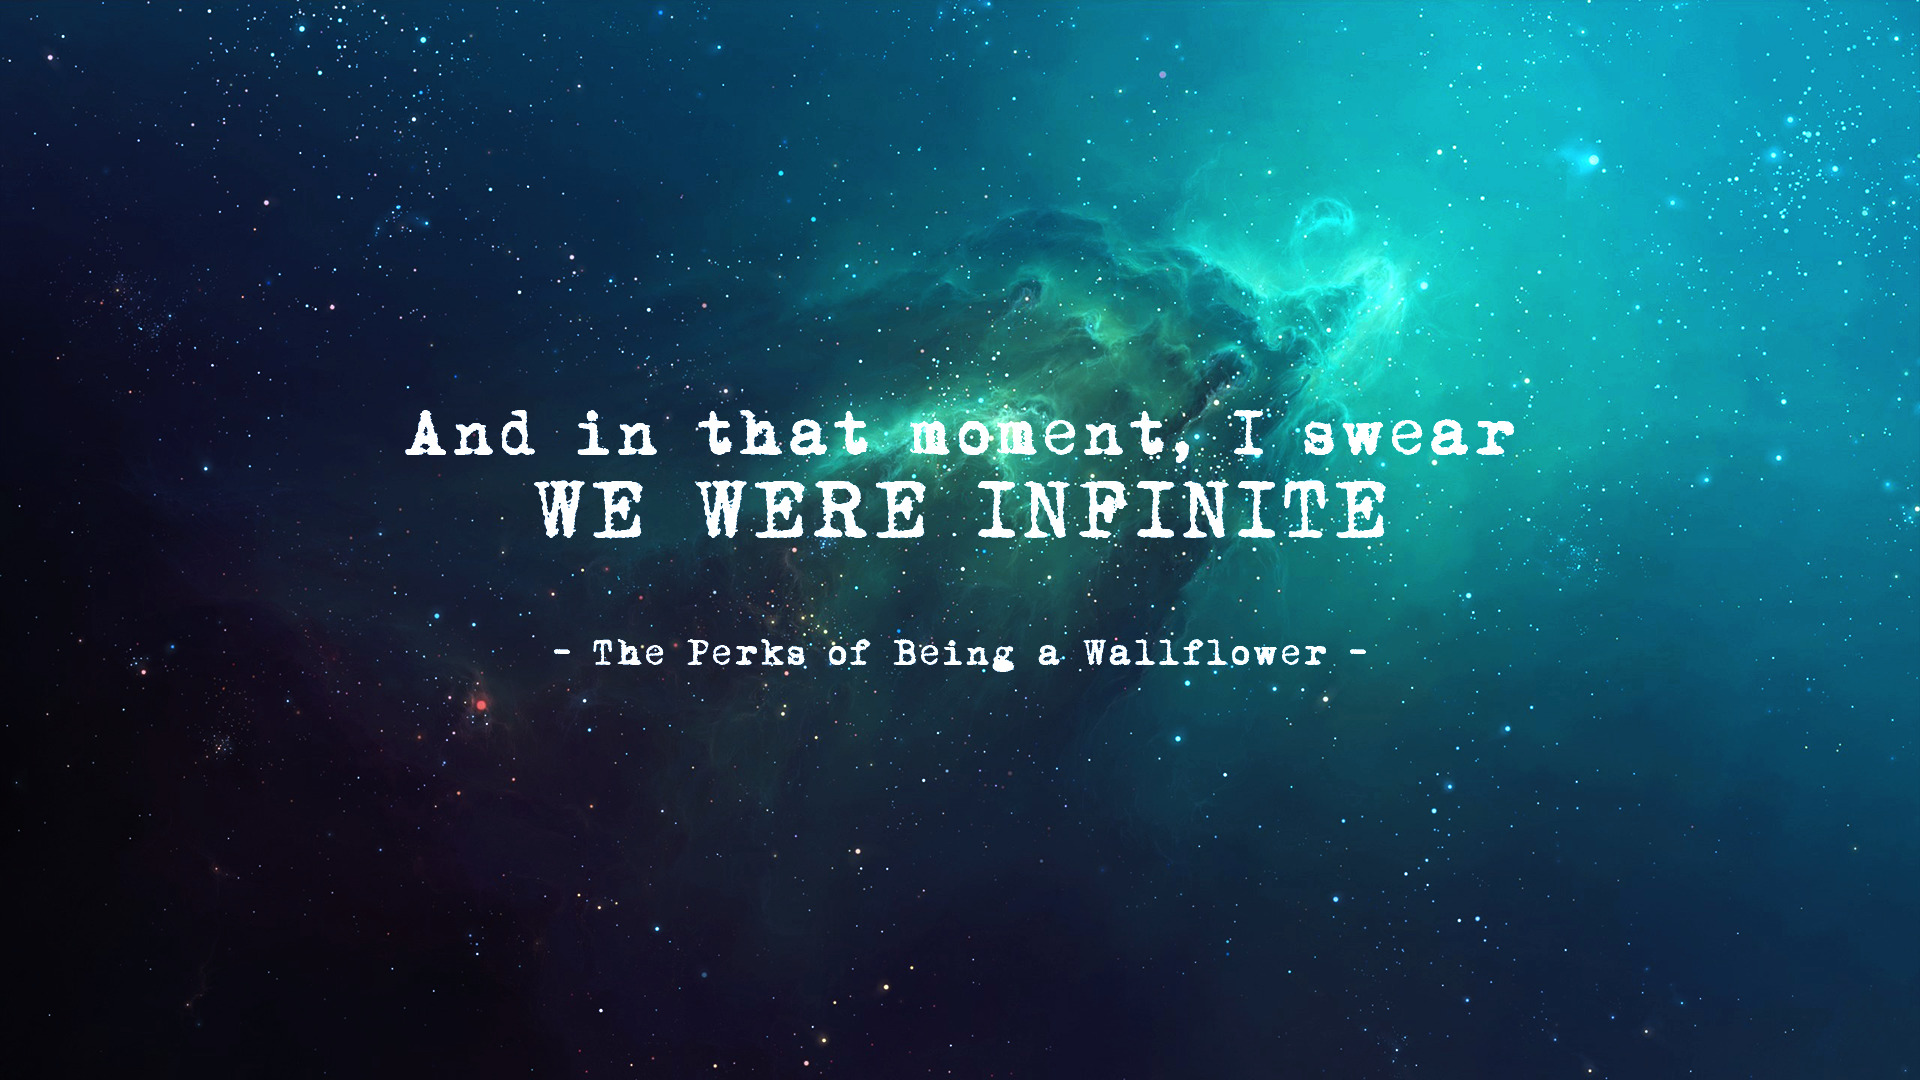 Jesus Wallpapers And Quotes The Perks Of Being A Wallflower Universe Quote Novels